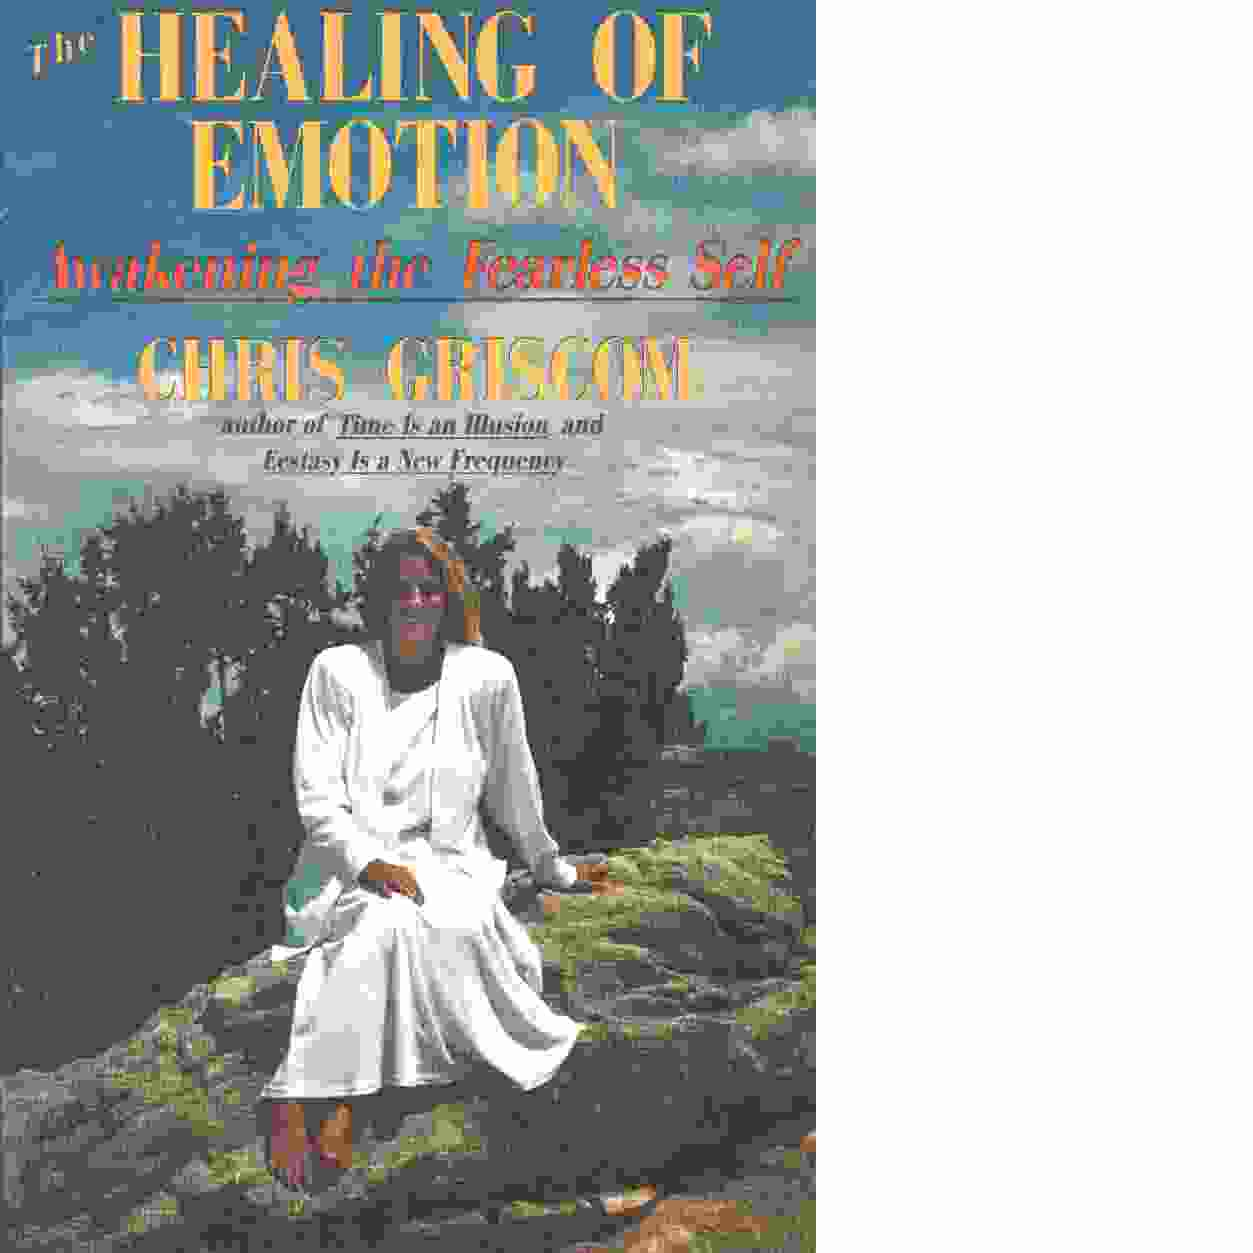 Healing of Emotion: Awakening the Fearless Self - Griscom, Chris